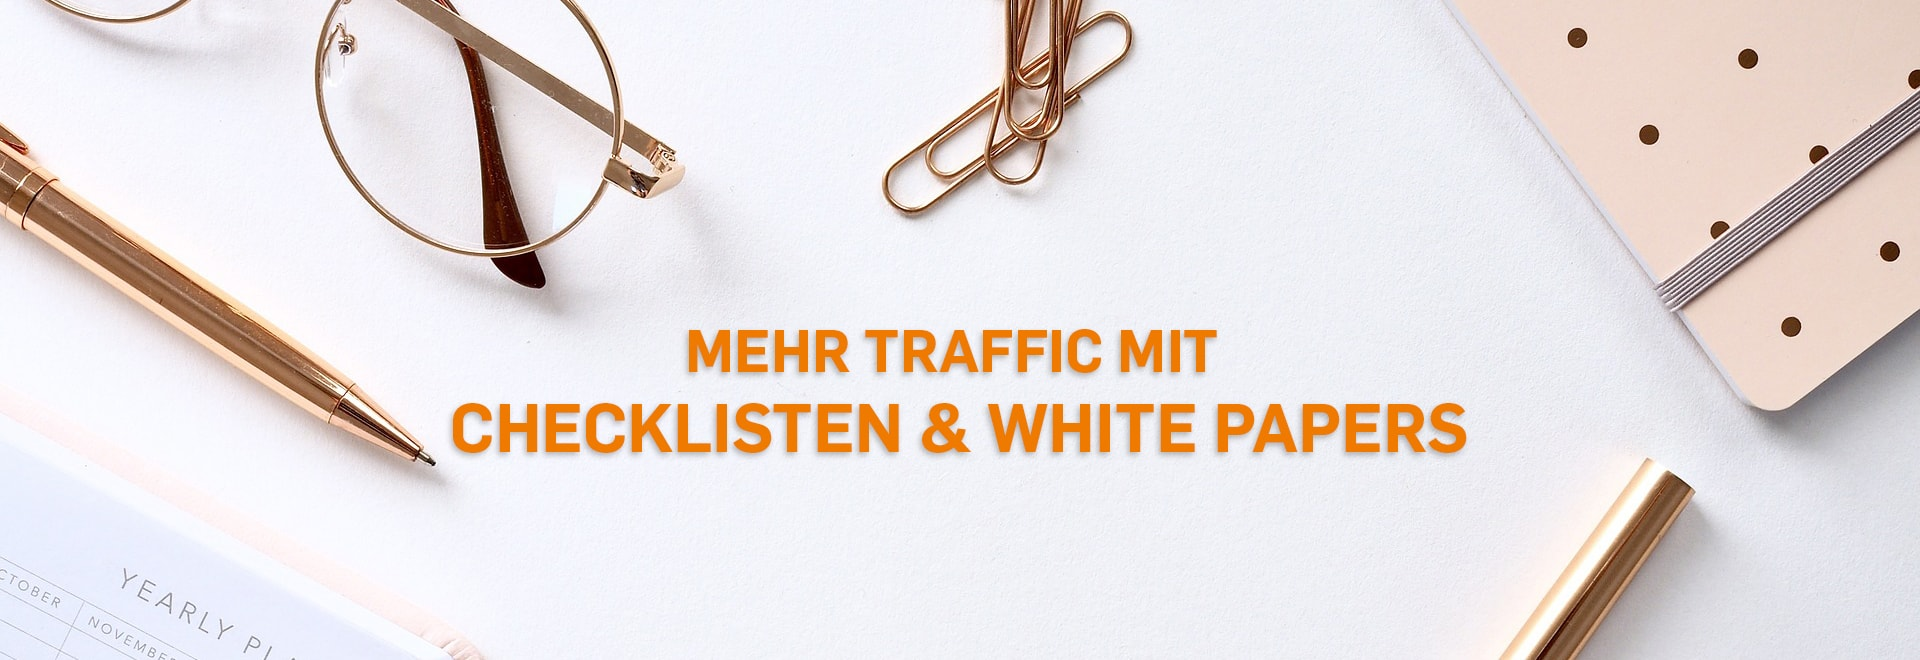 Checklisten und White Papers